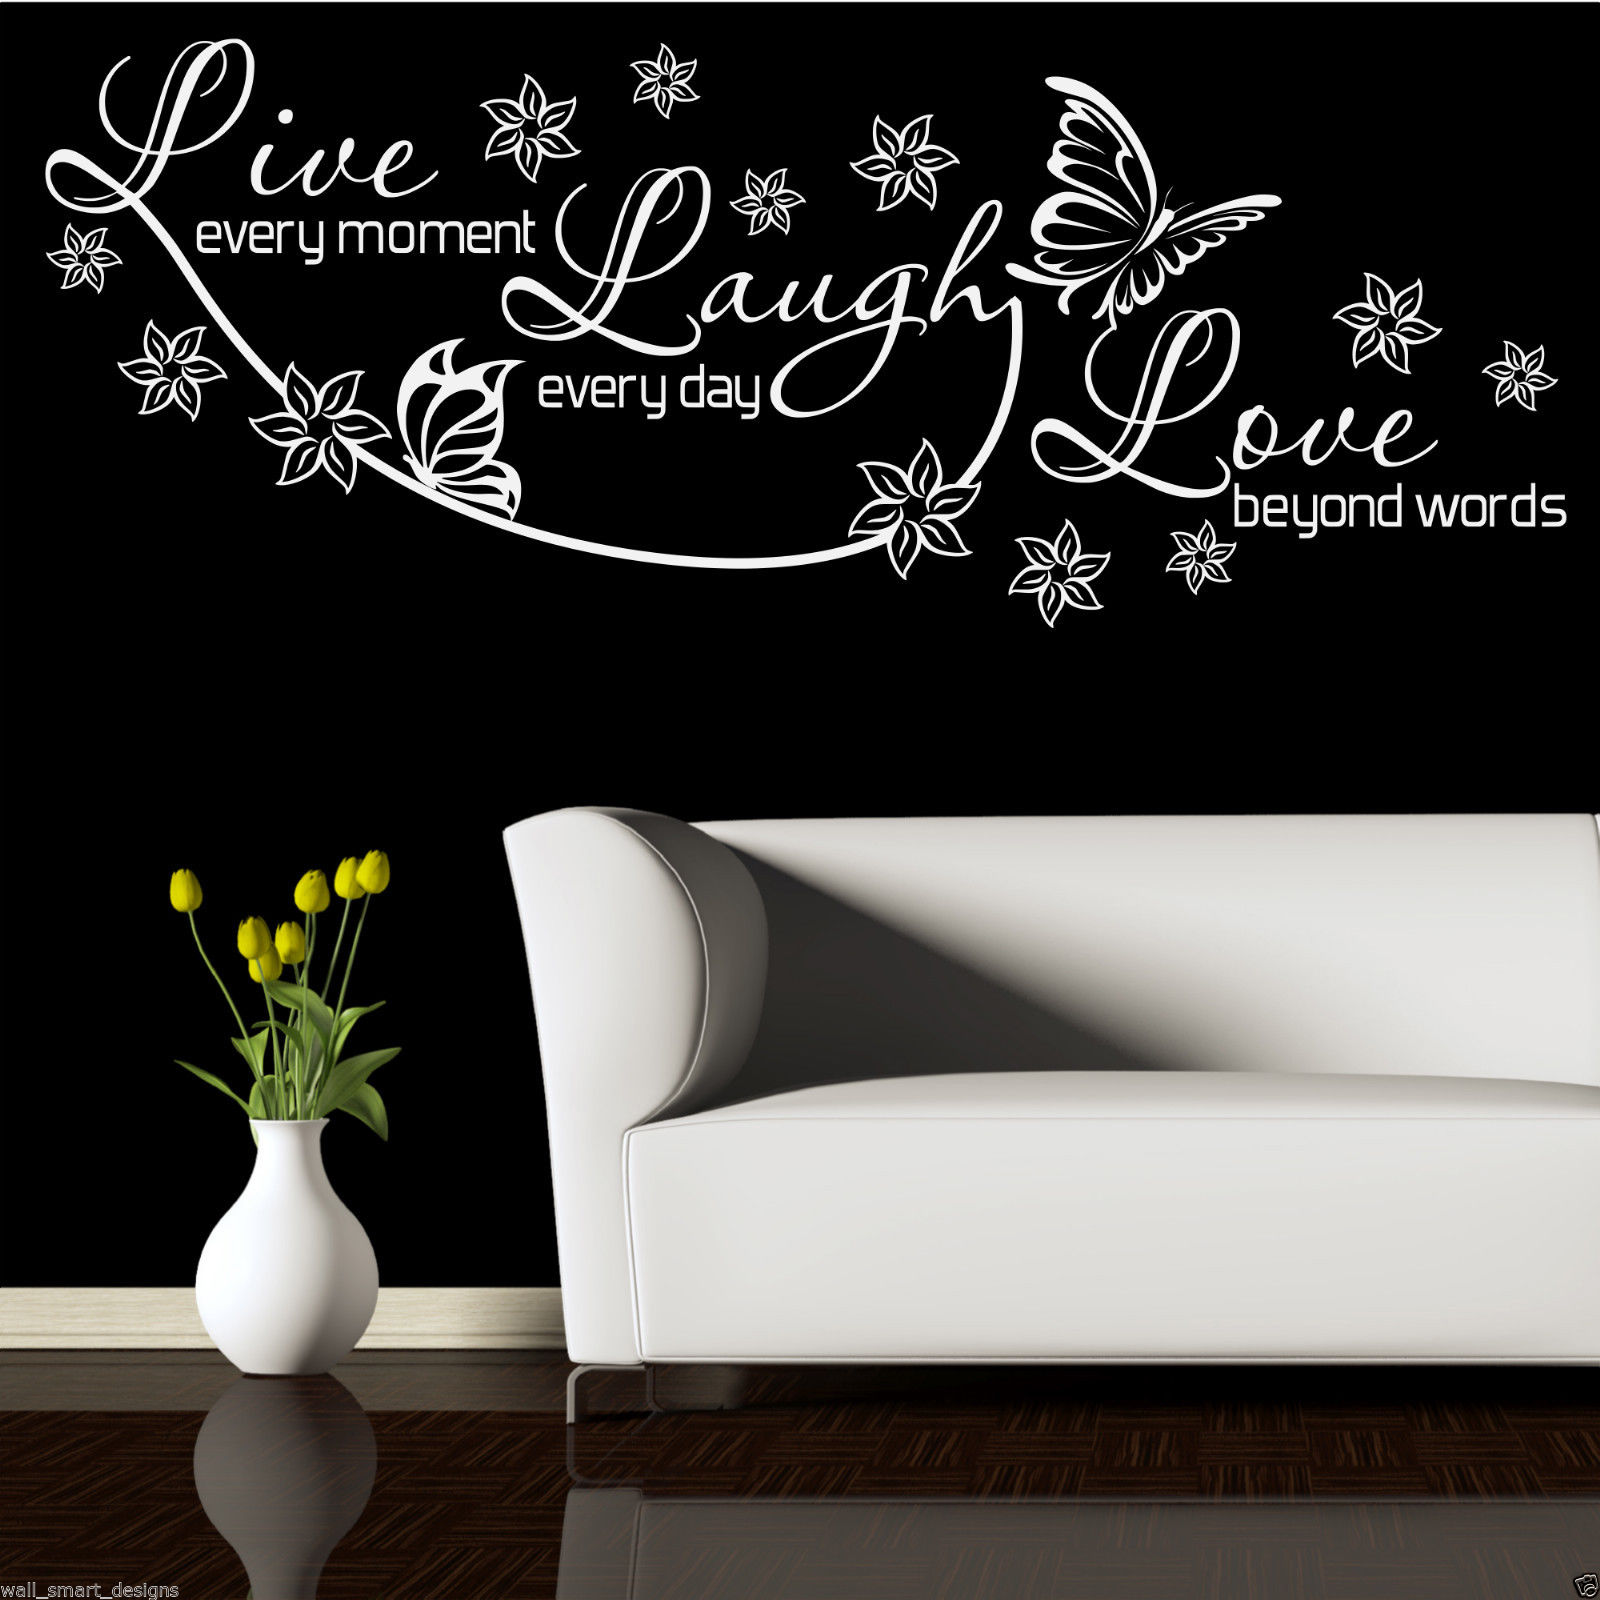 Wall Stickers Live Laugh Love Live Laugh Love Wall Art Sticker Lounge Room Quote Decal